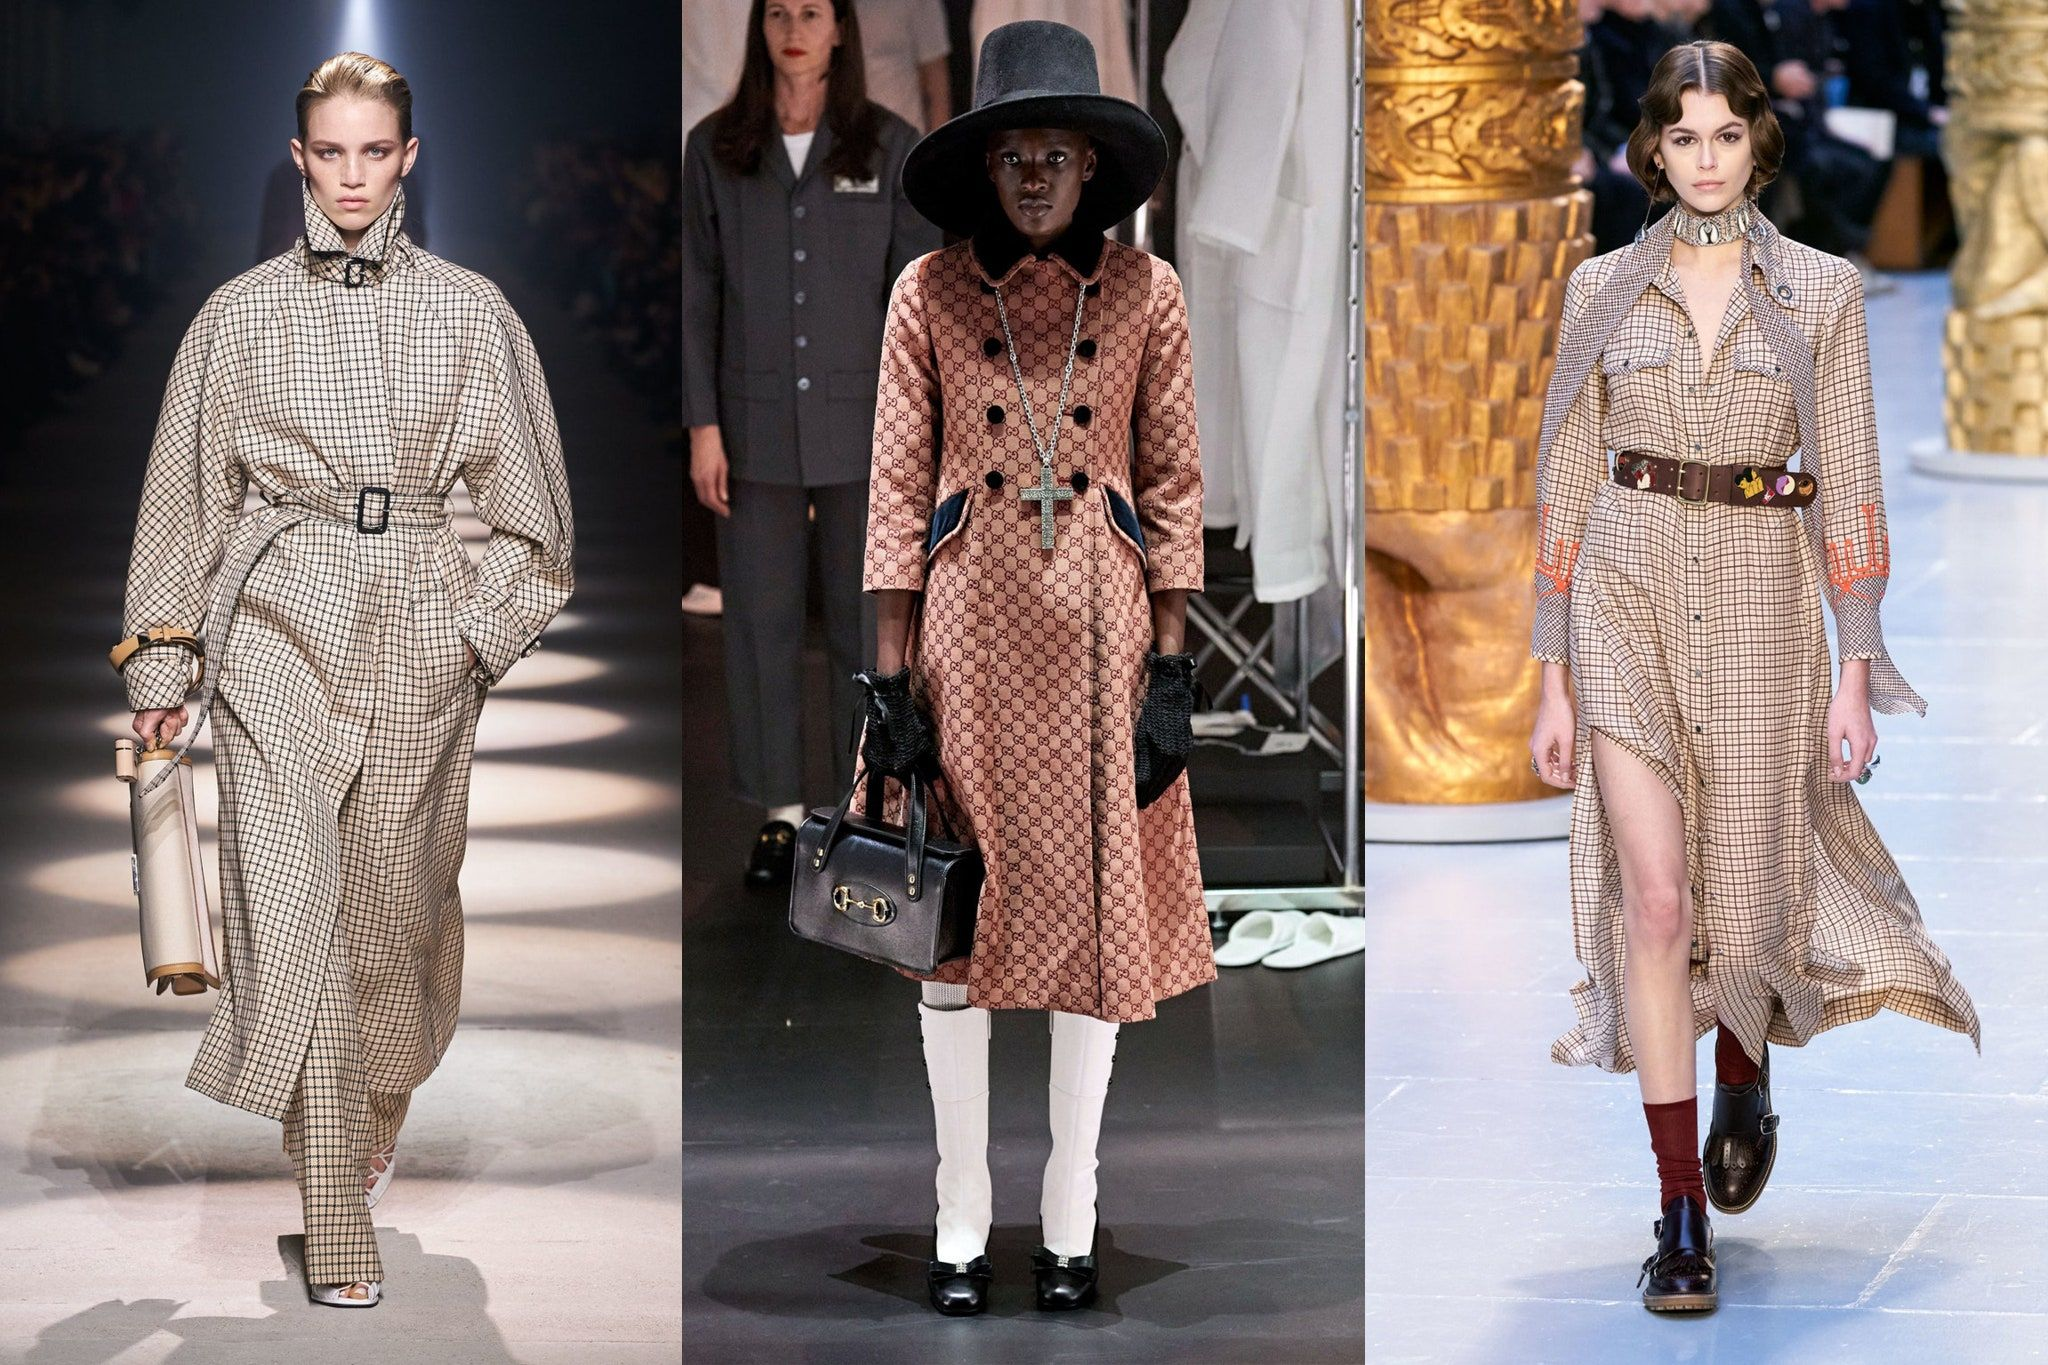 These are the key fashion trends for Fall/Winter 6-6